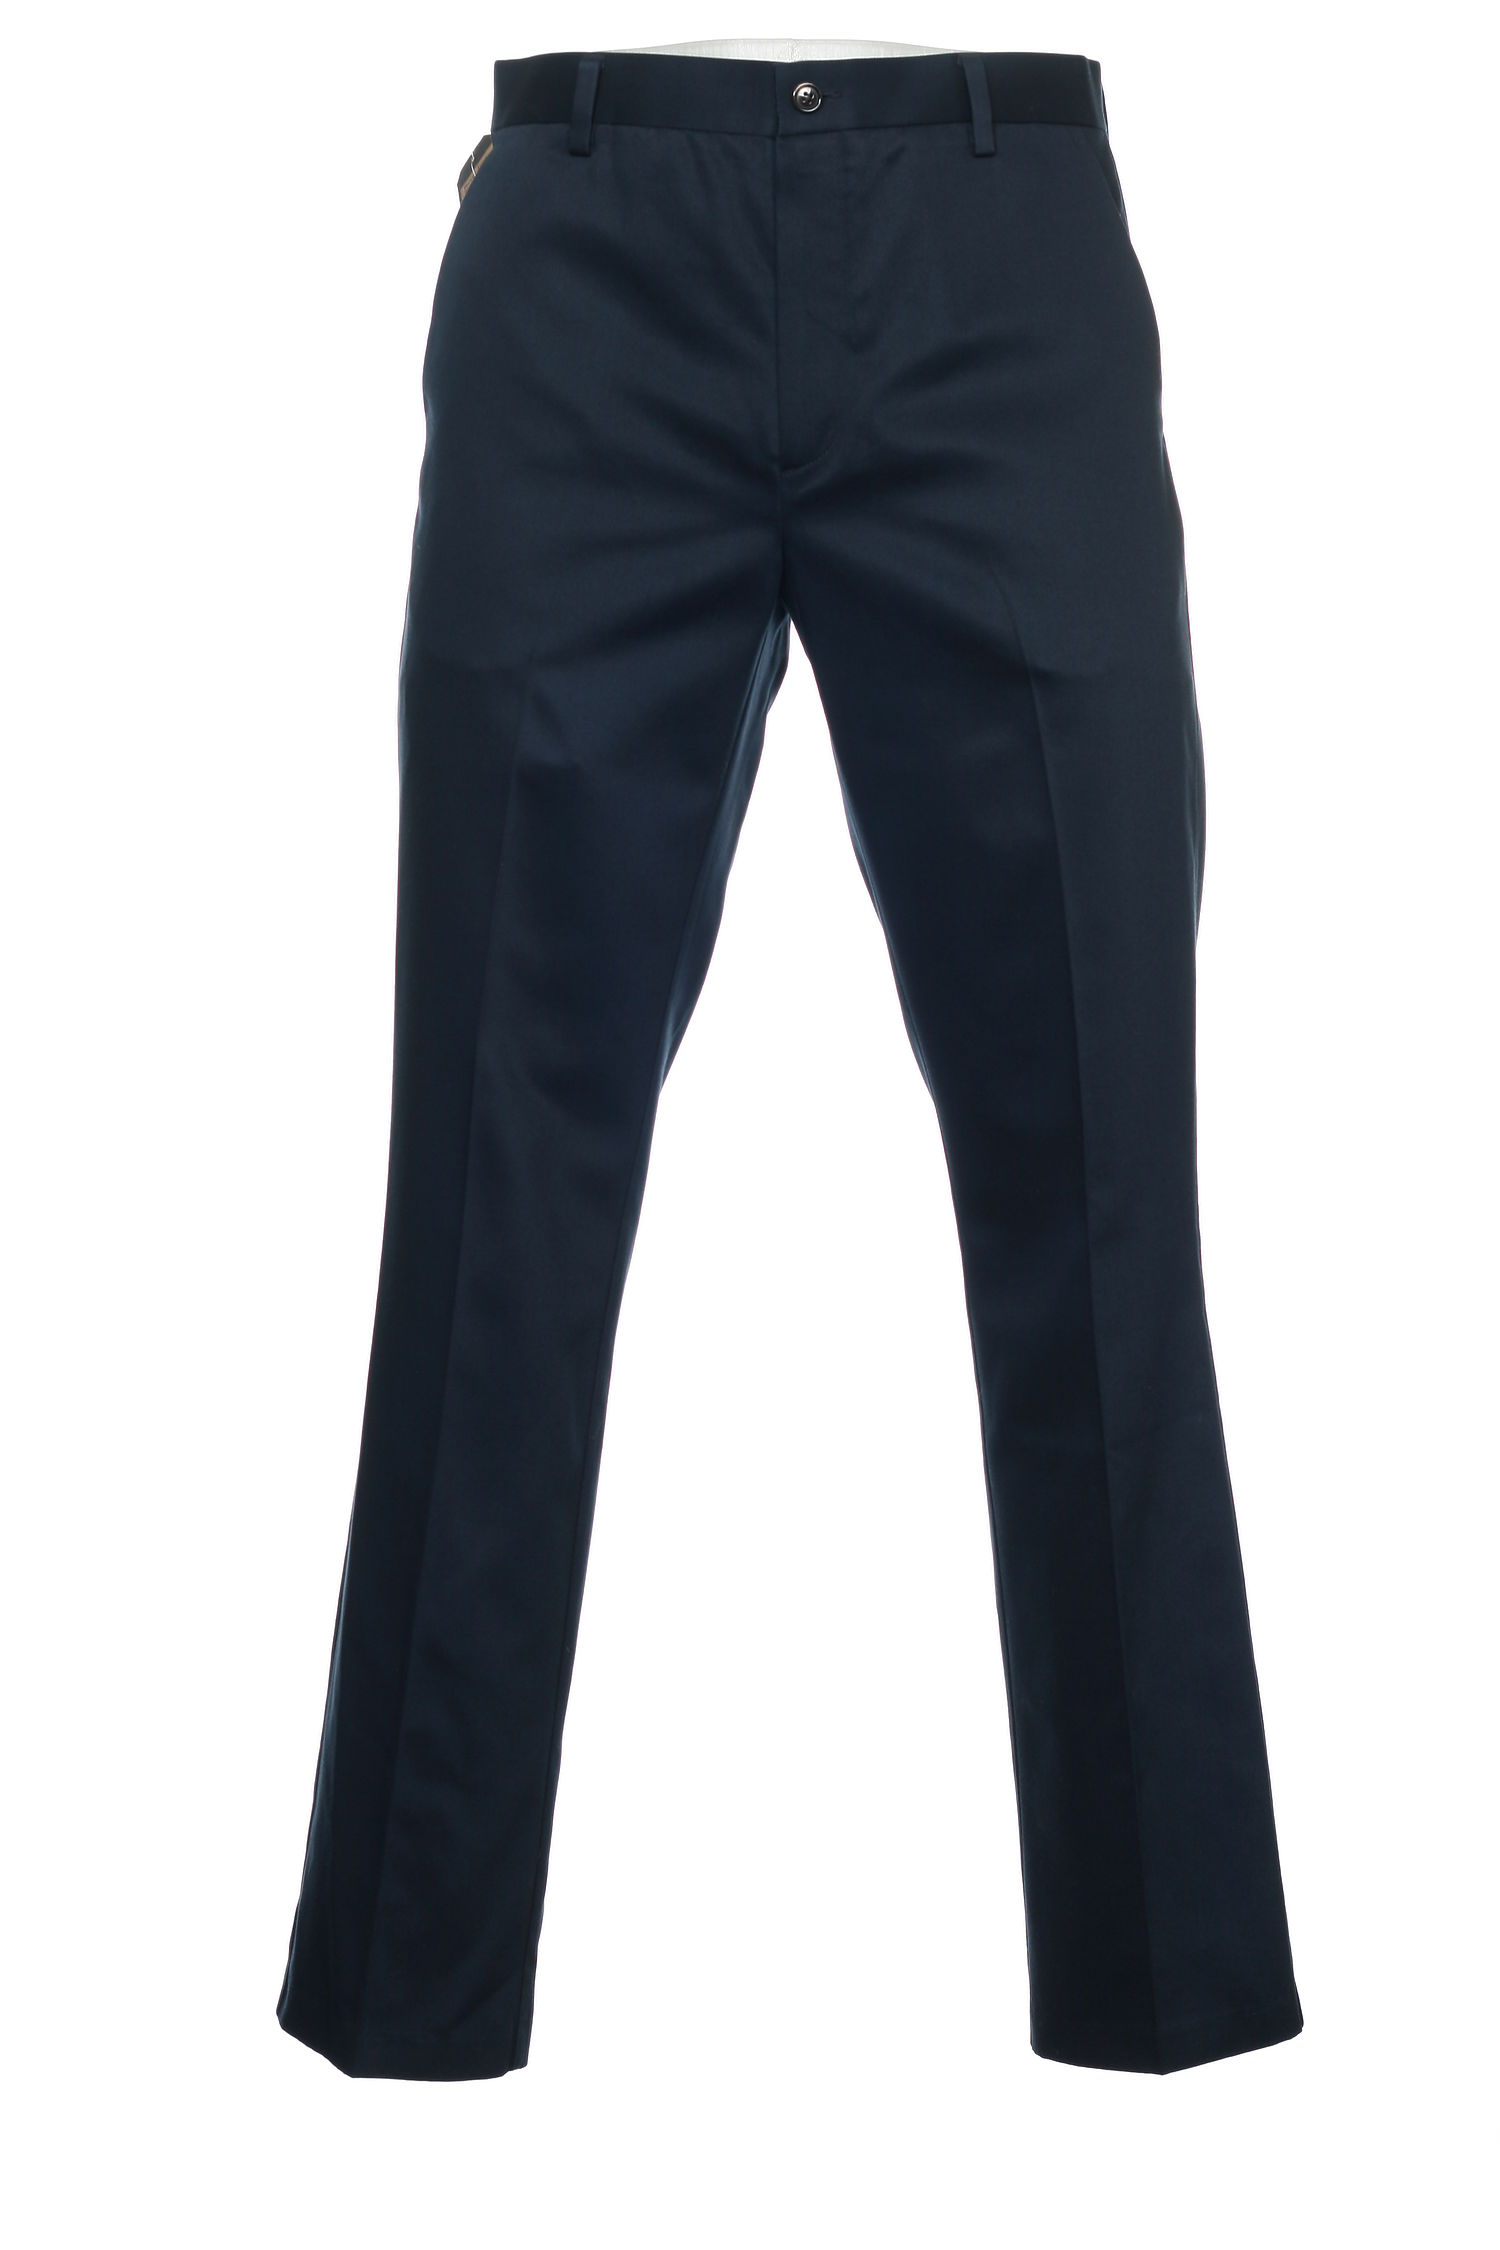 Dockers Men's Blue Flat Front Pants by Dockers